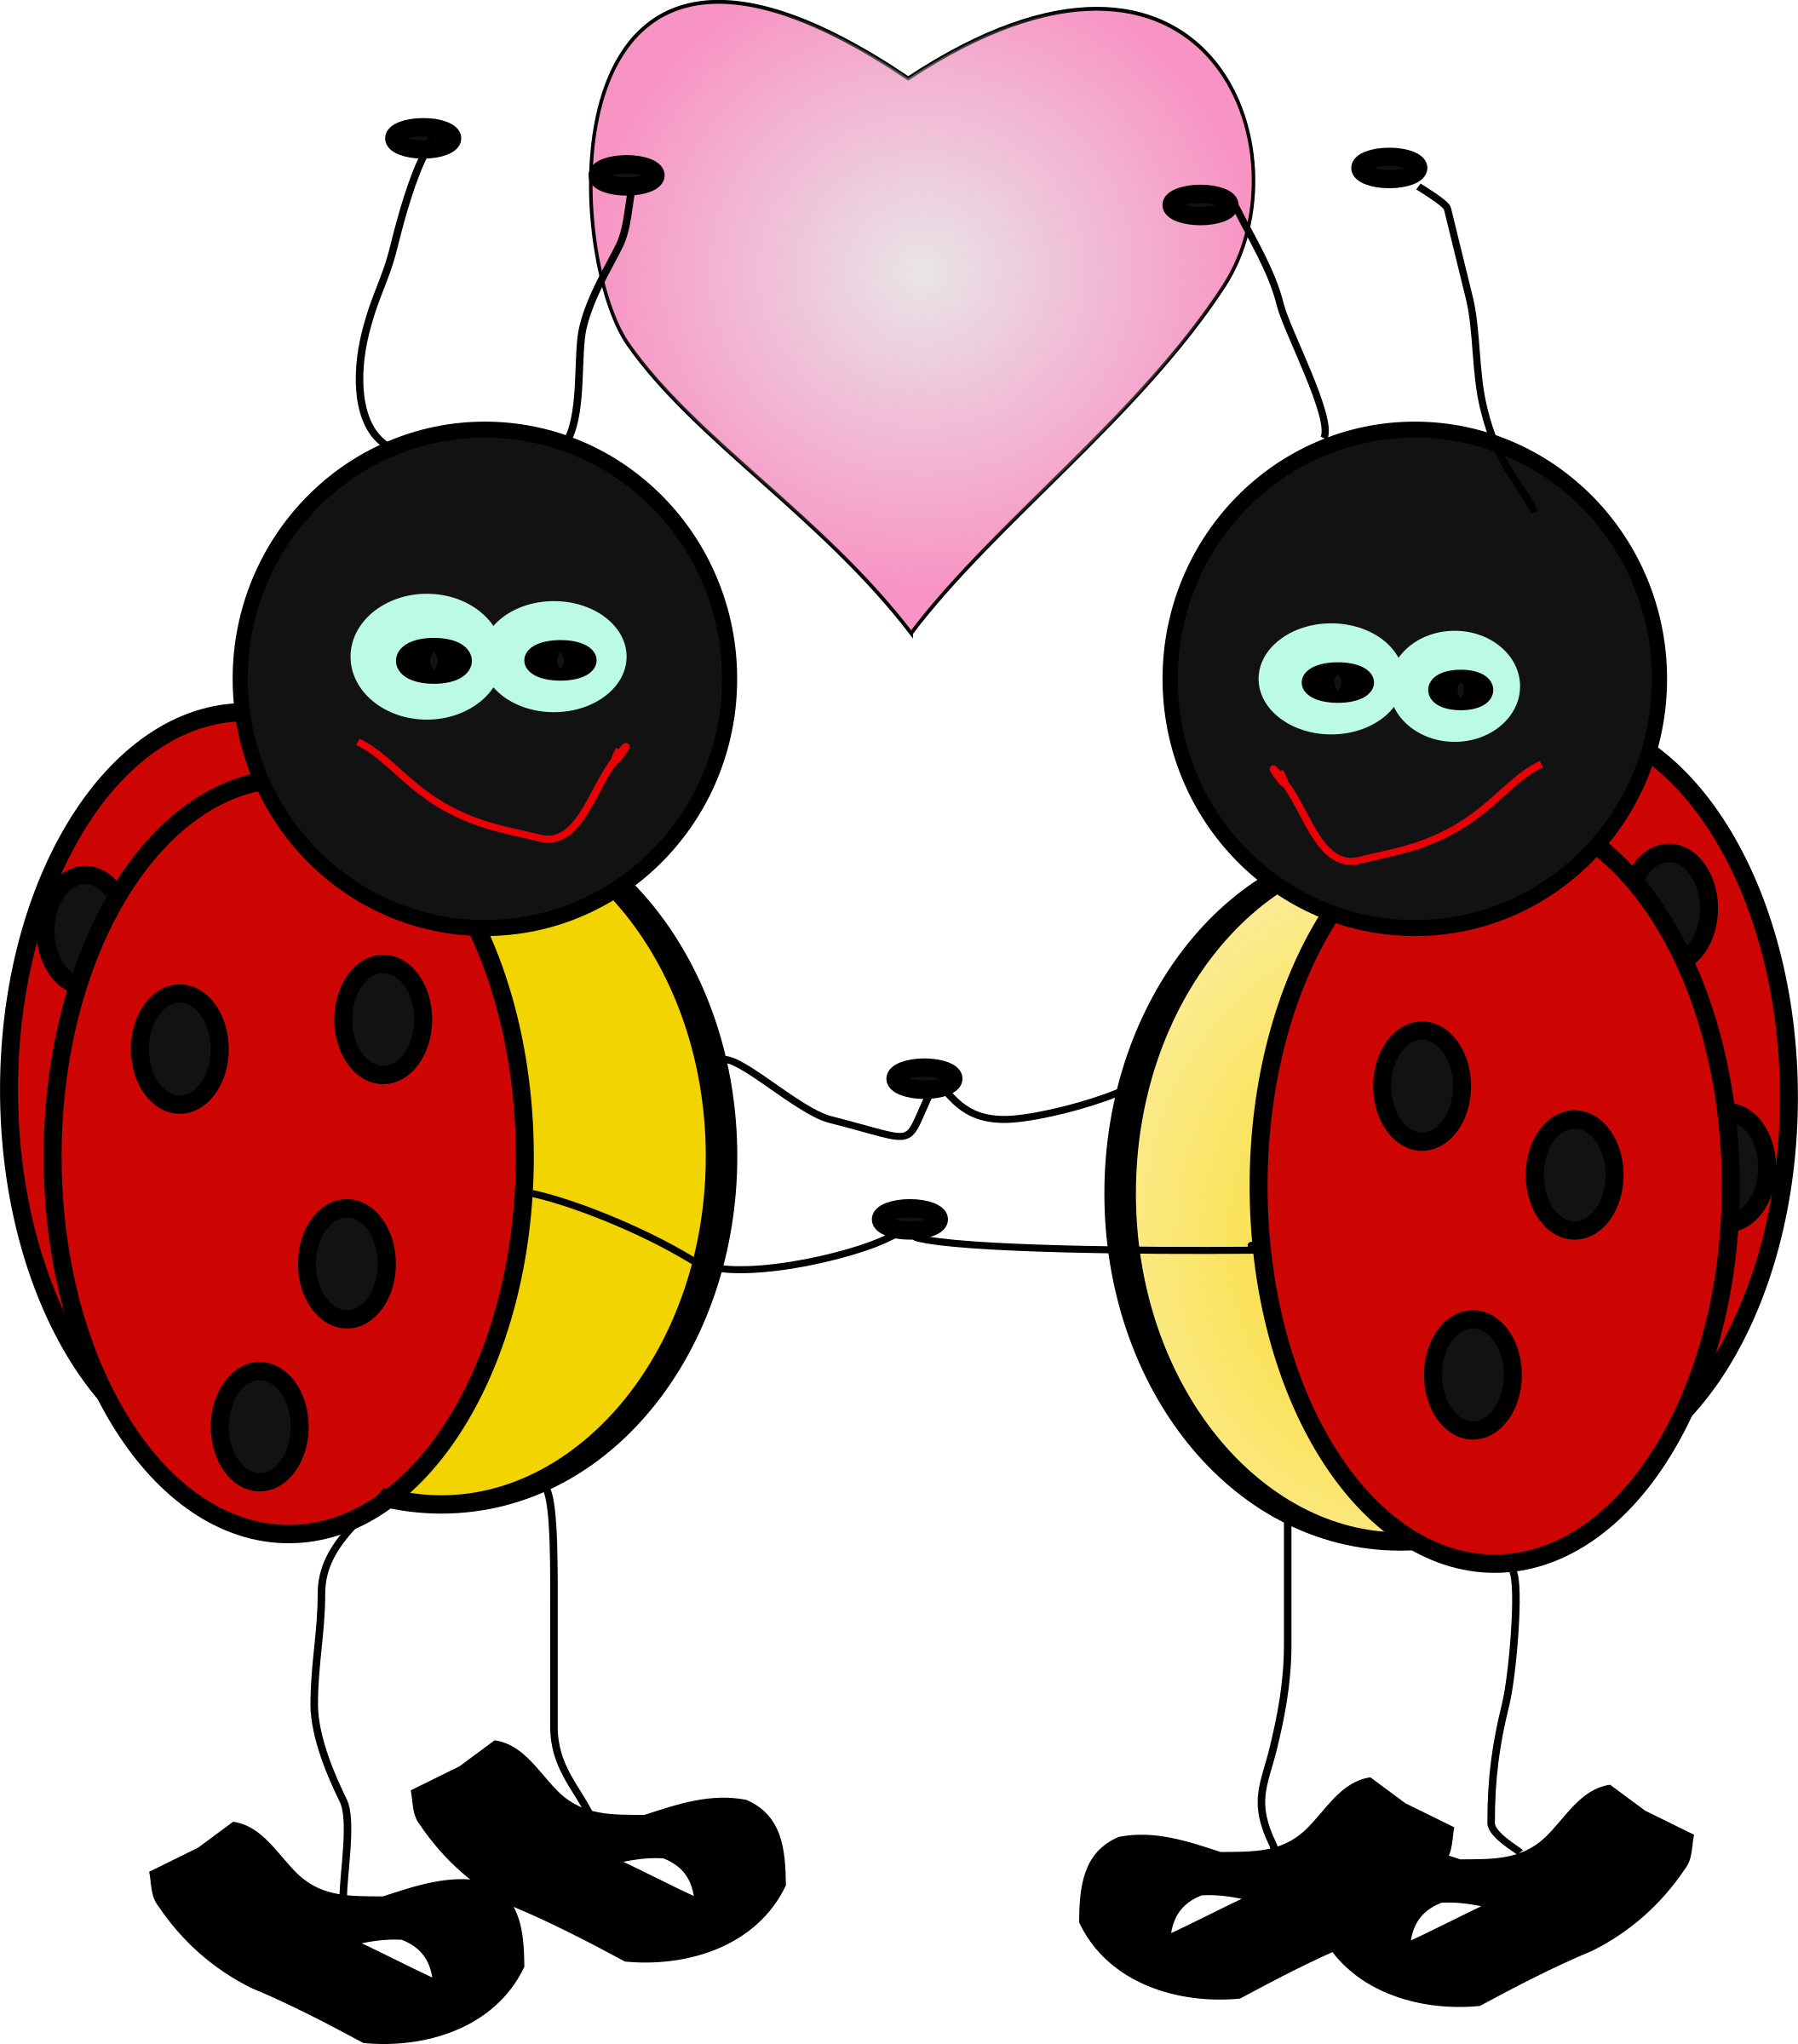 Bugs clipart. Lady big image png